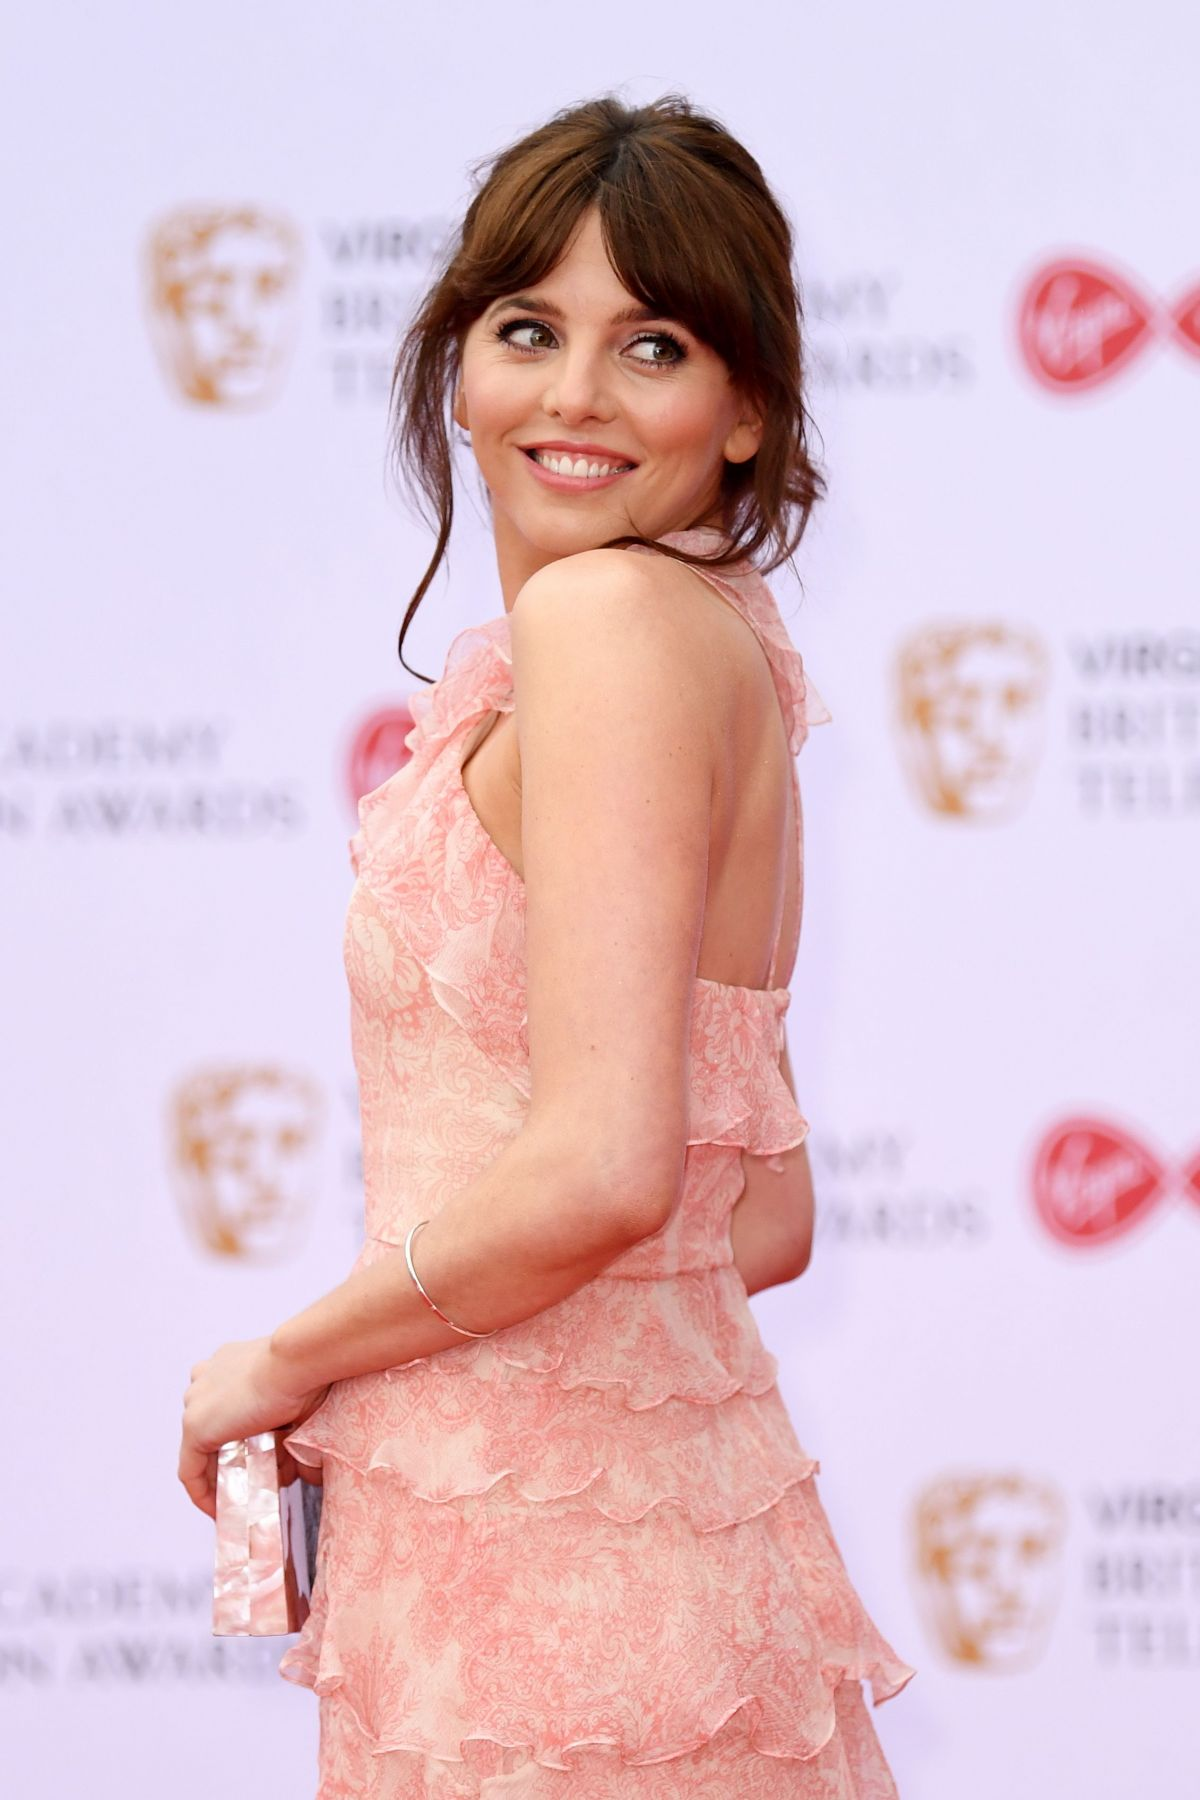 OPHELIA LOVIBOND at 2017 British Academy Television Awards in London 05/14/2017